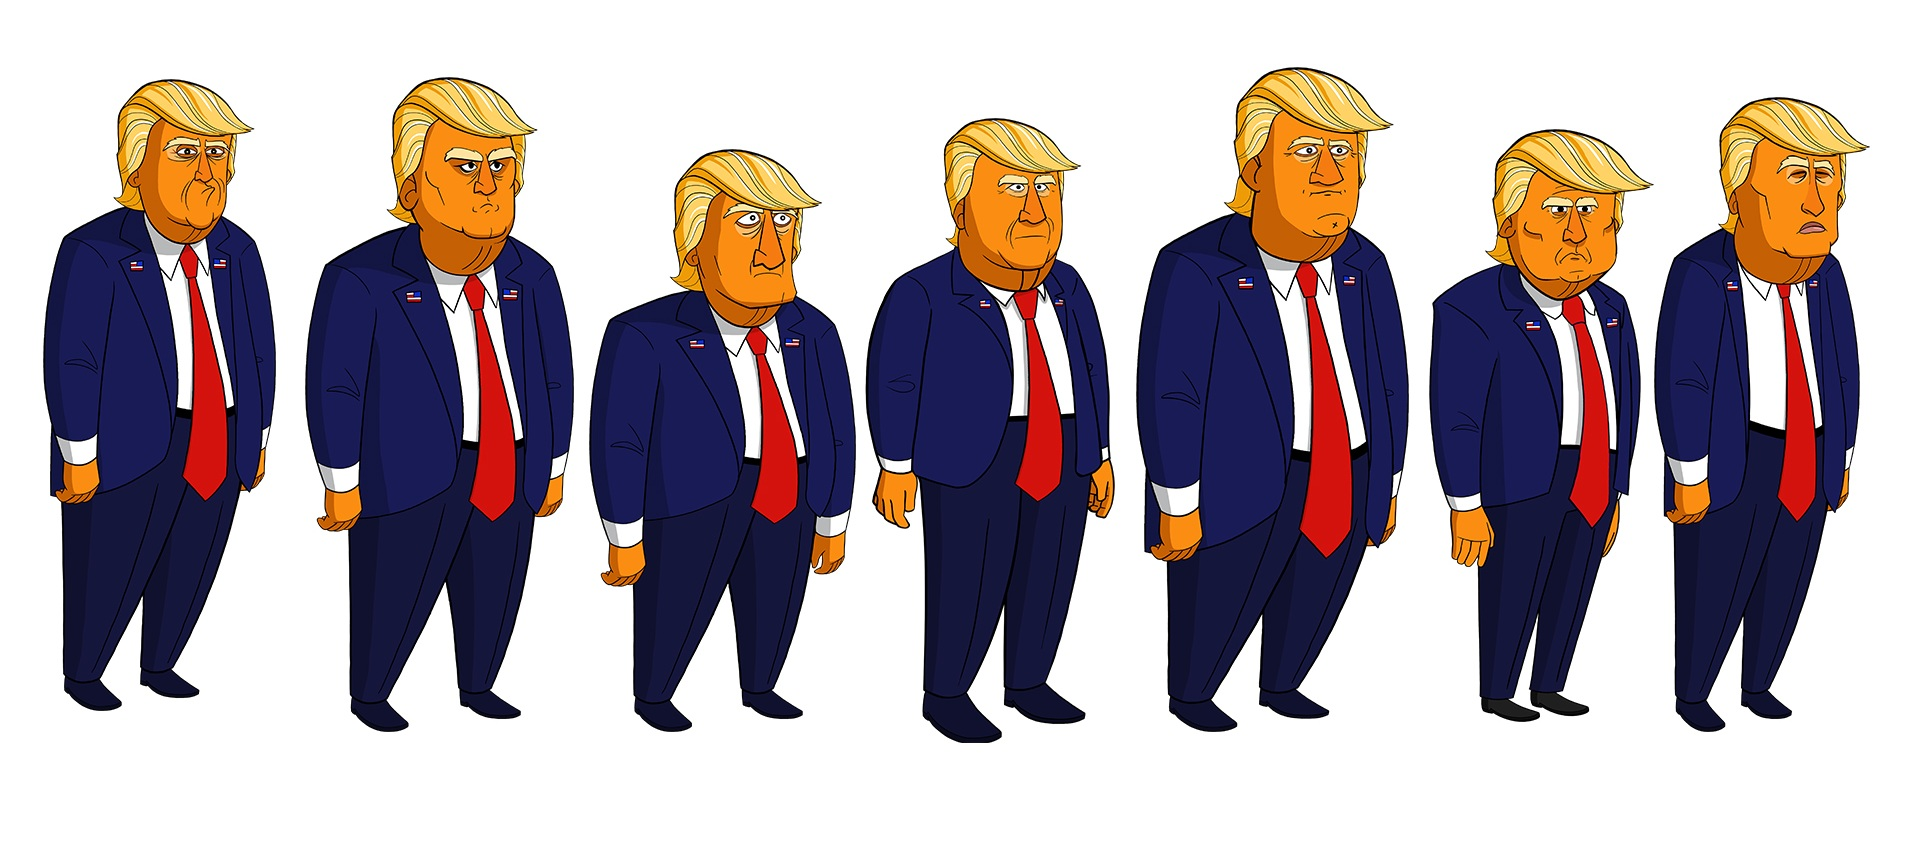 A group of Donald Trump impersonators featured in an early episode. Original Donald Trump design (left) by show creator Tim Lueke